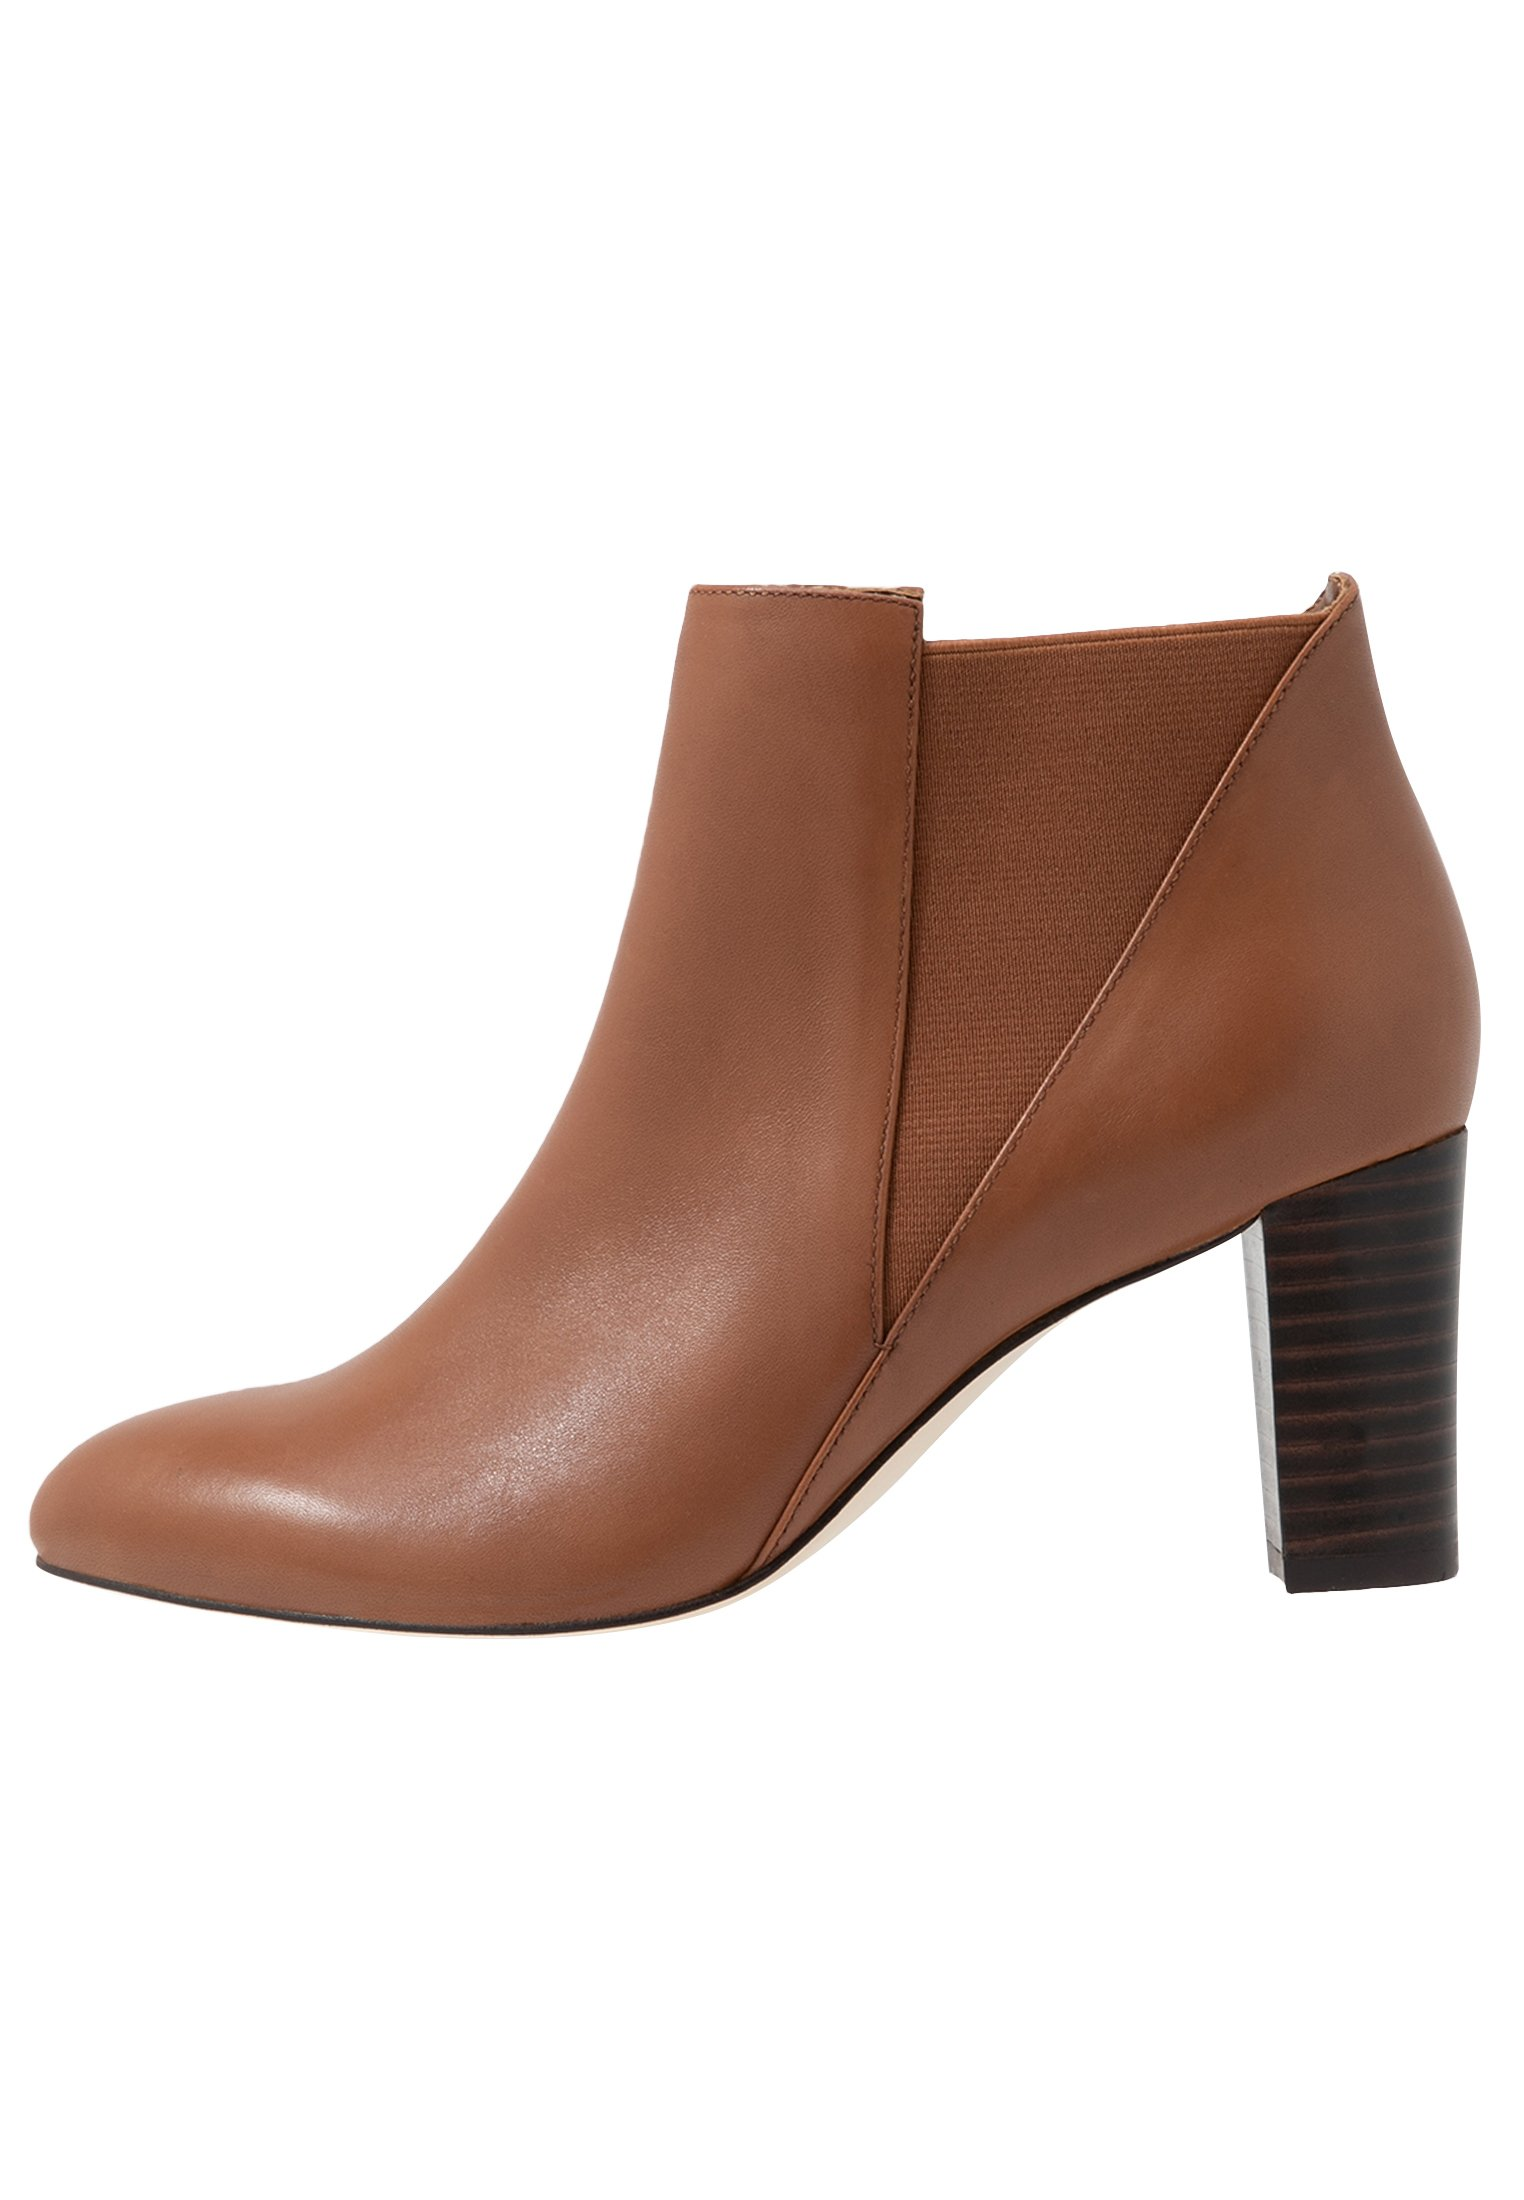 Anna Field Leather Booties - Stivaletti Cognac M8nWKfZ